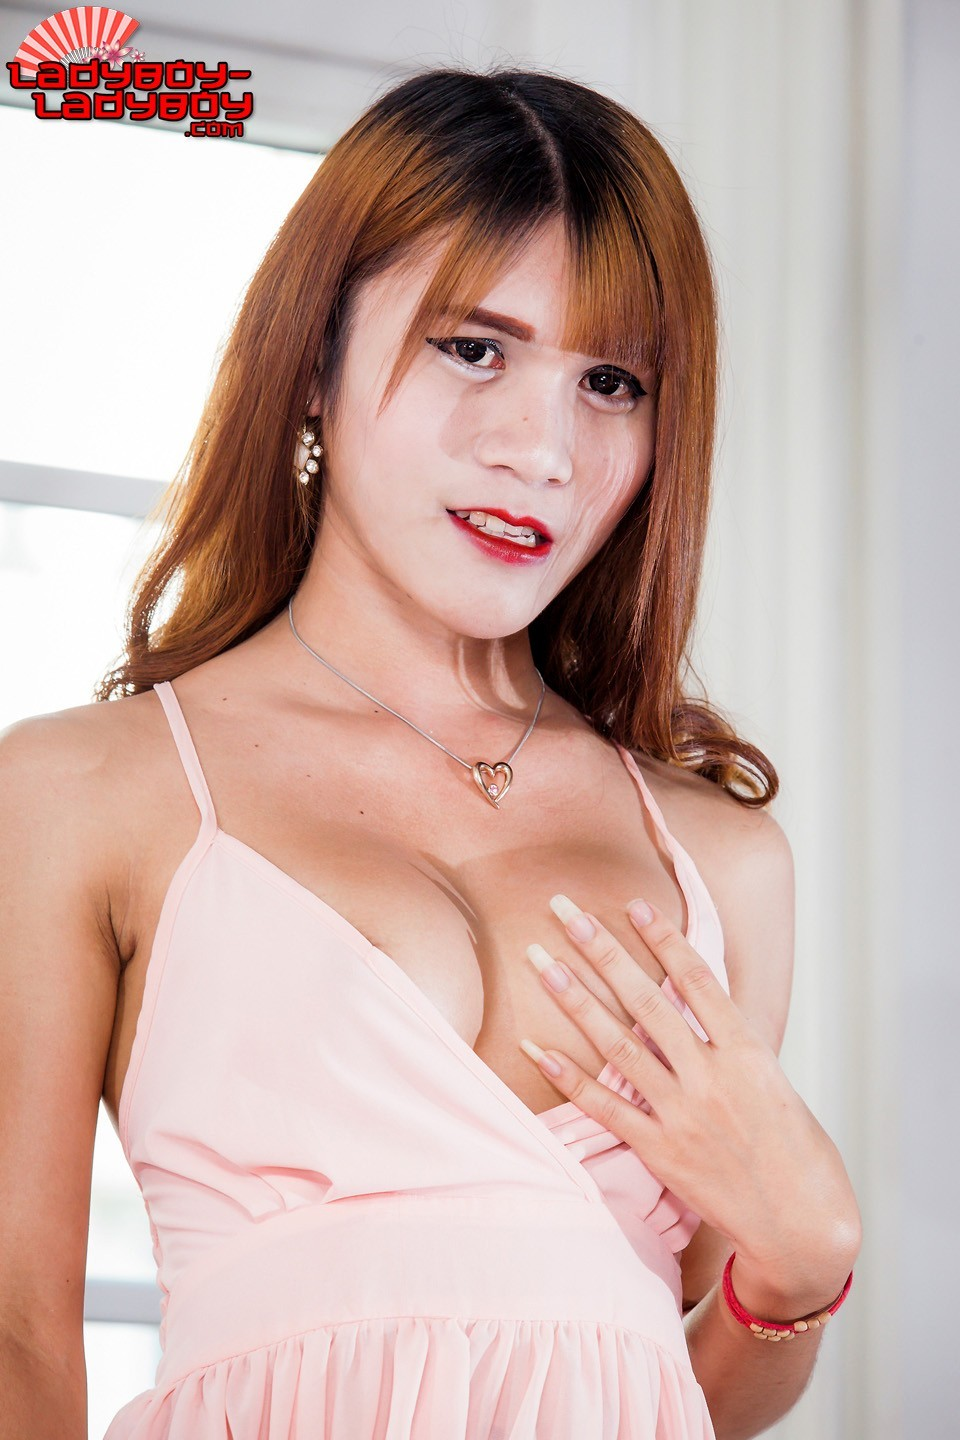 Phon Is Another Incredible Girl From Bangkok! Phon Has A Arousing